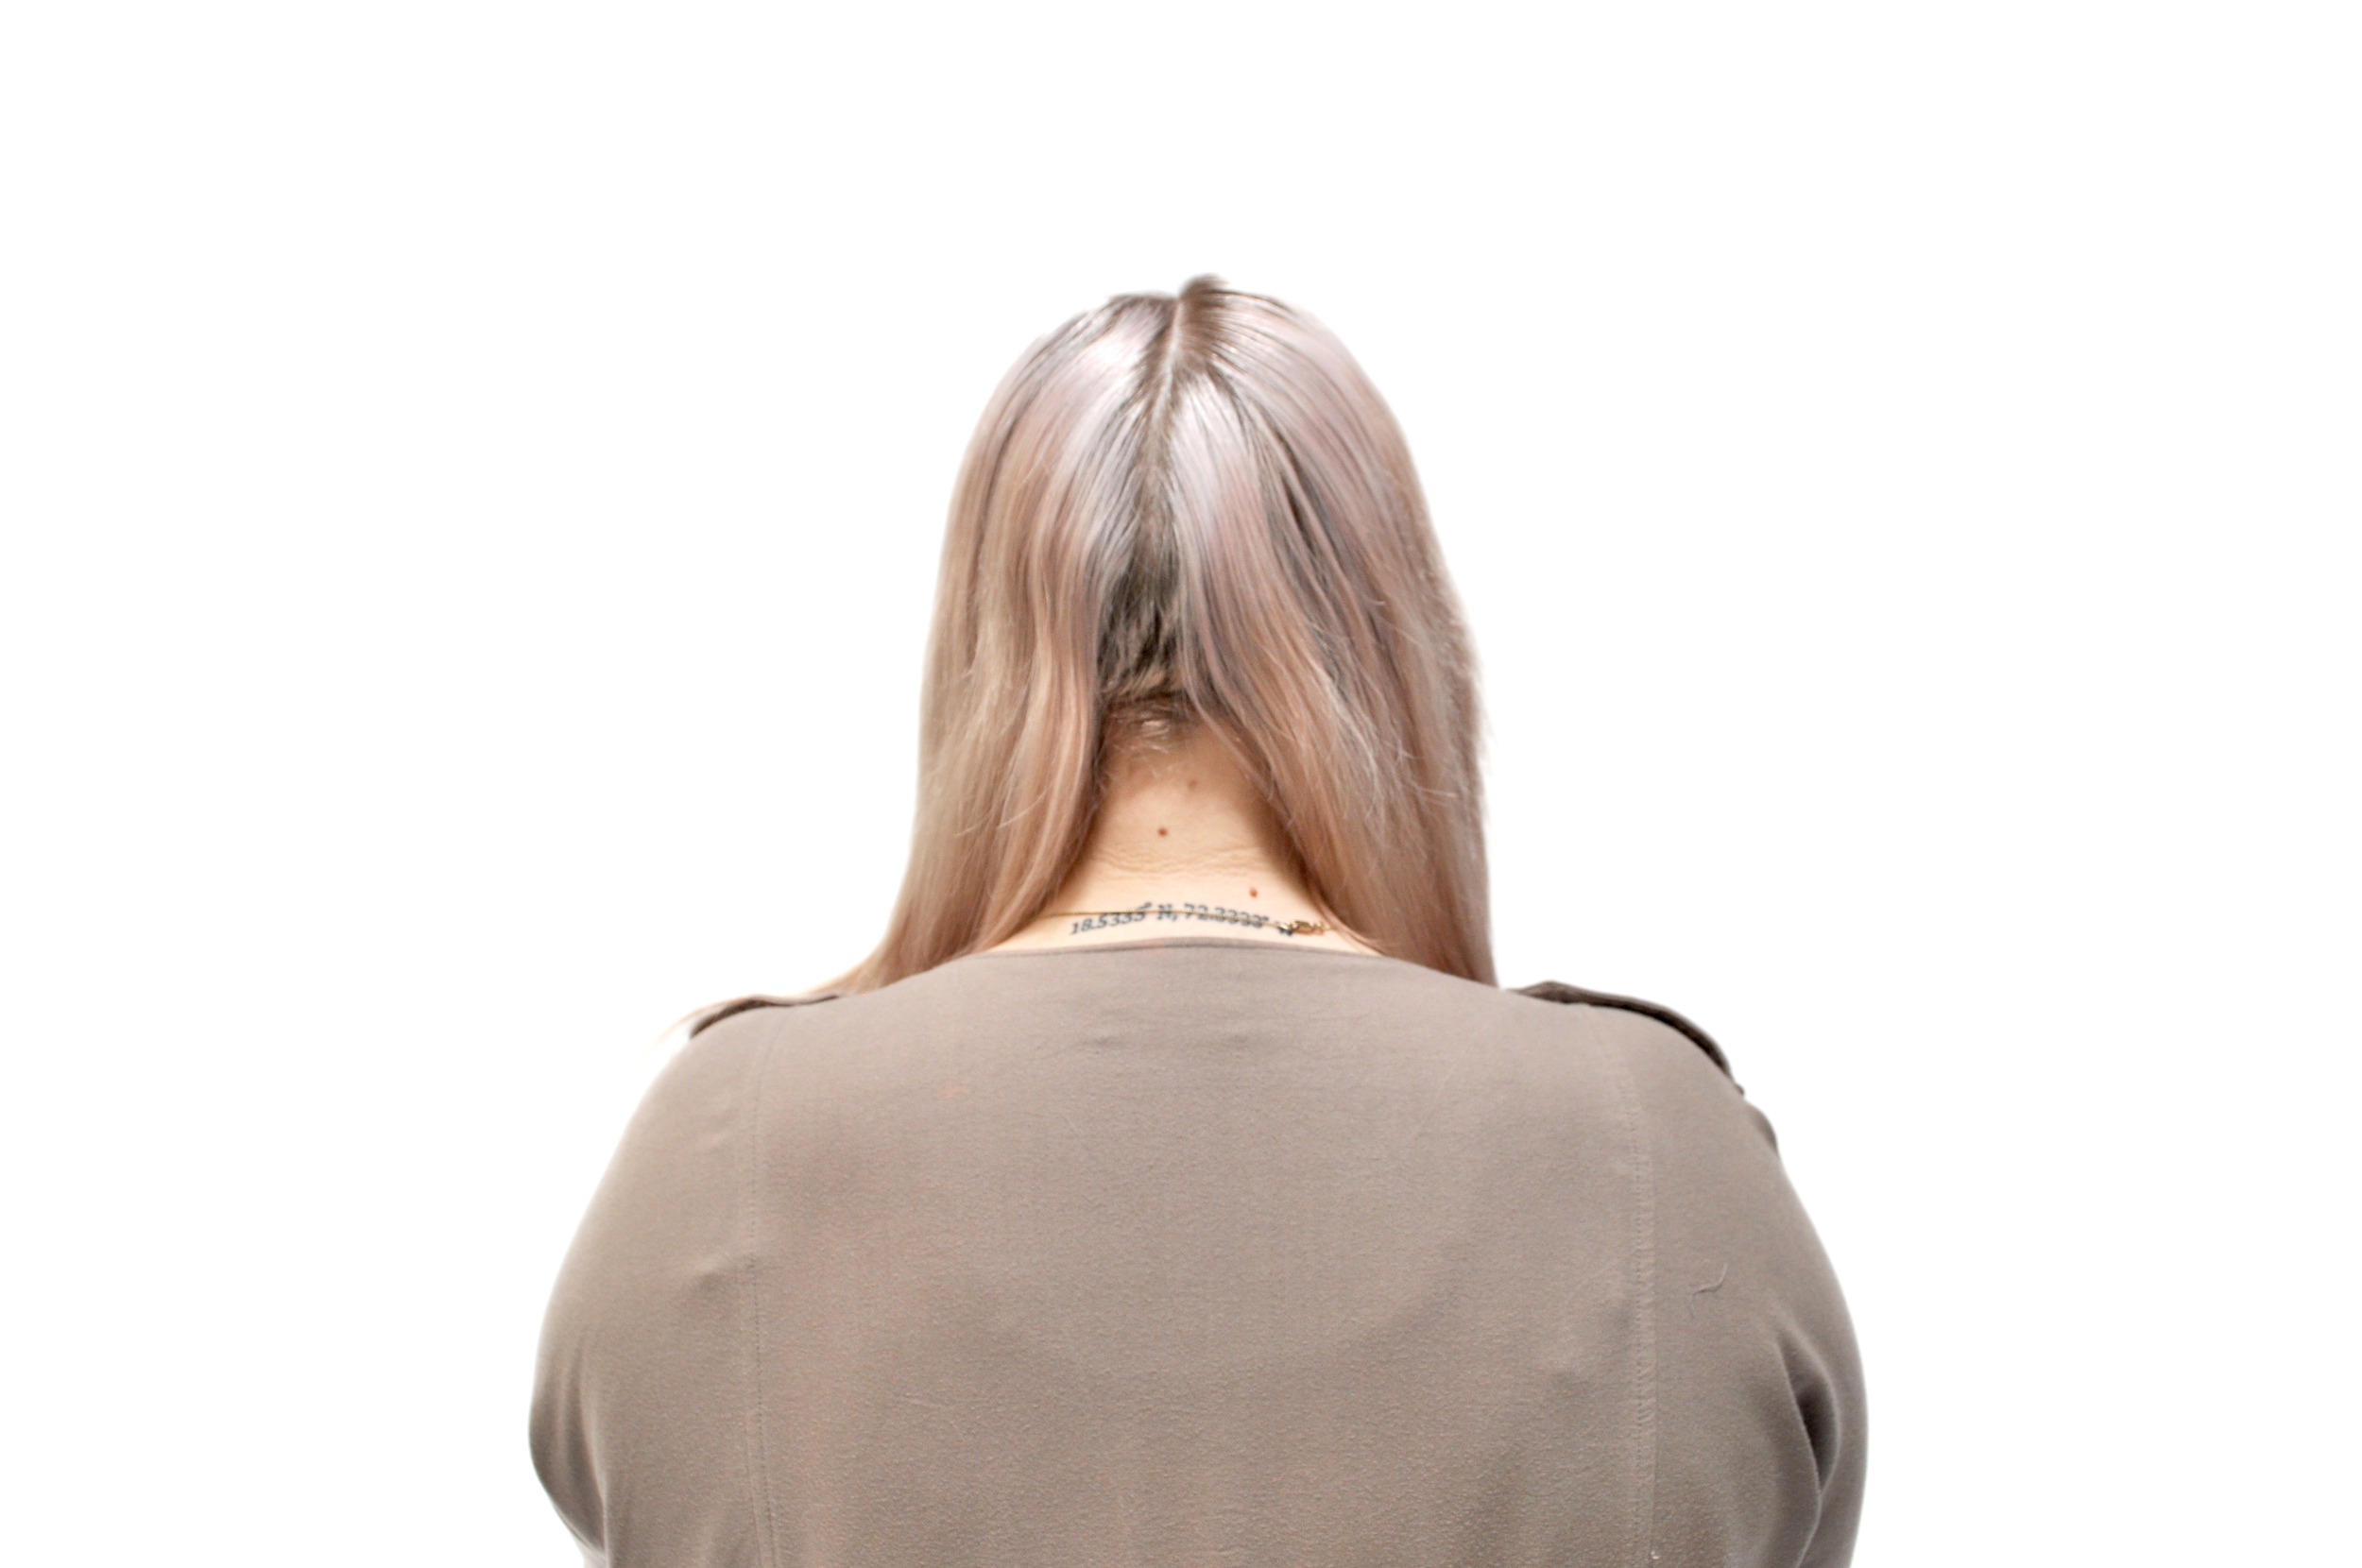 Part your hair down the middle.Start on one side by taking a section at the top of the head, and divide the section into 3 stands, crossing over each other like a regular braid.